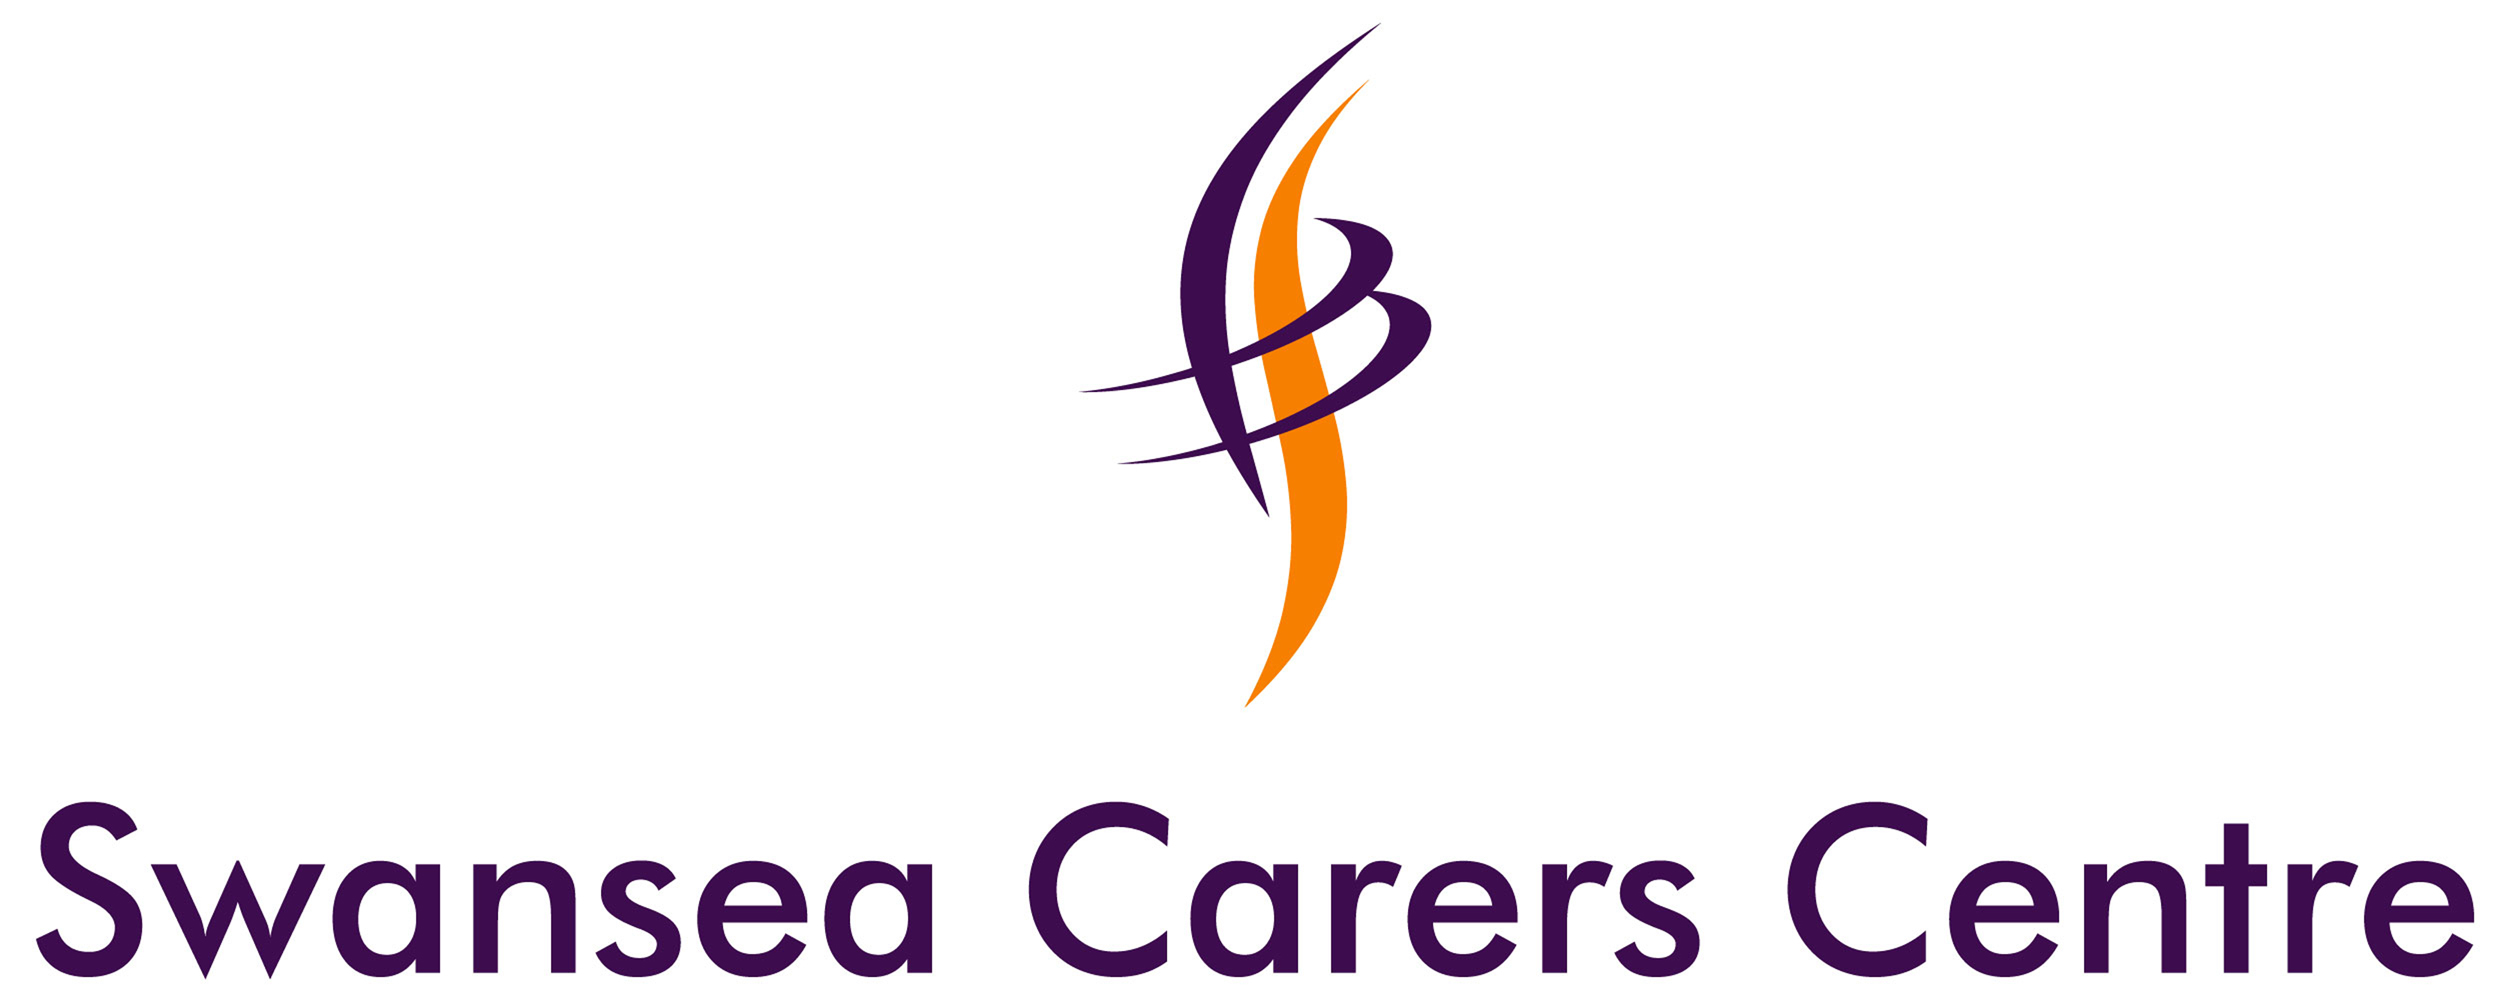 Swansea Carers Centre partner logo